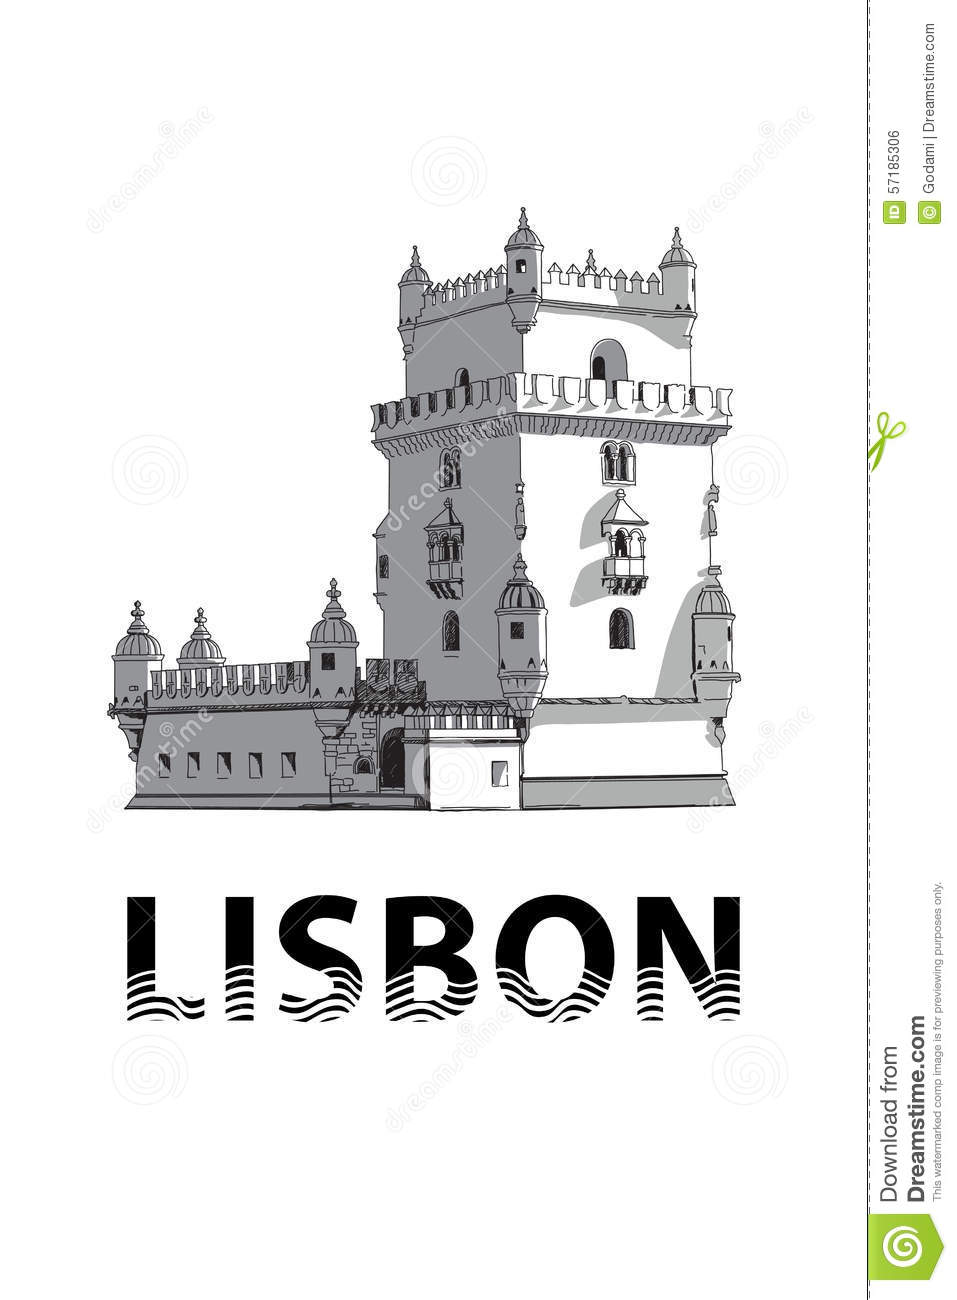 The Sketch Of Belem Tower In Lisbon Stock Vector.